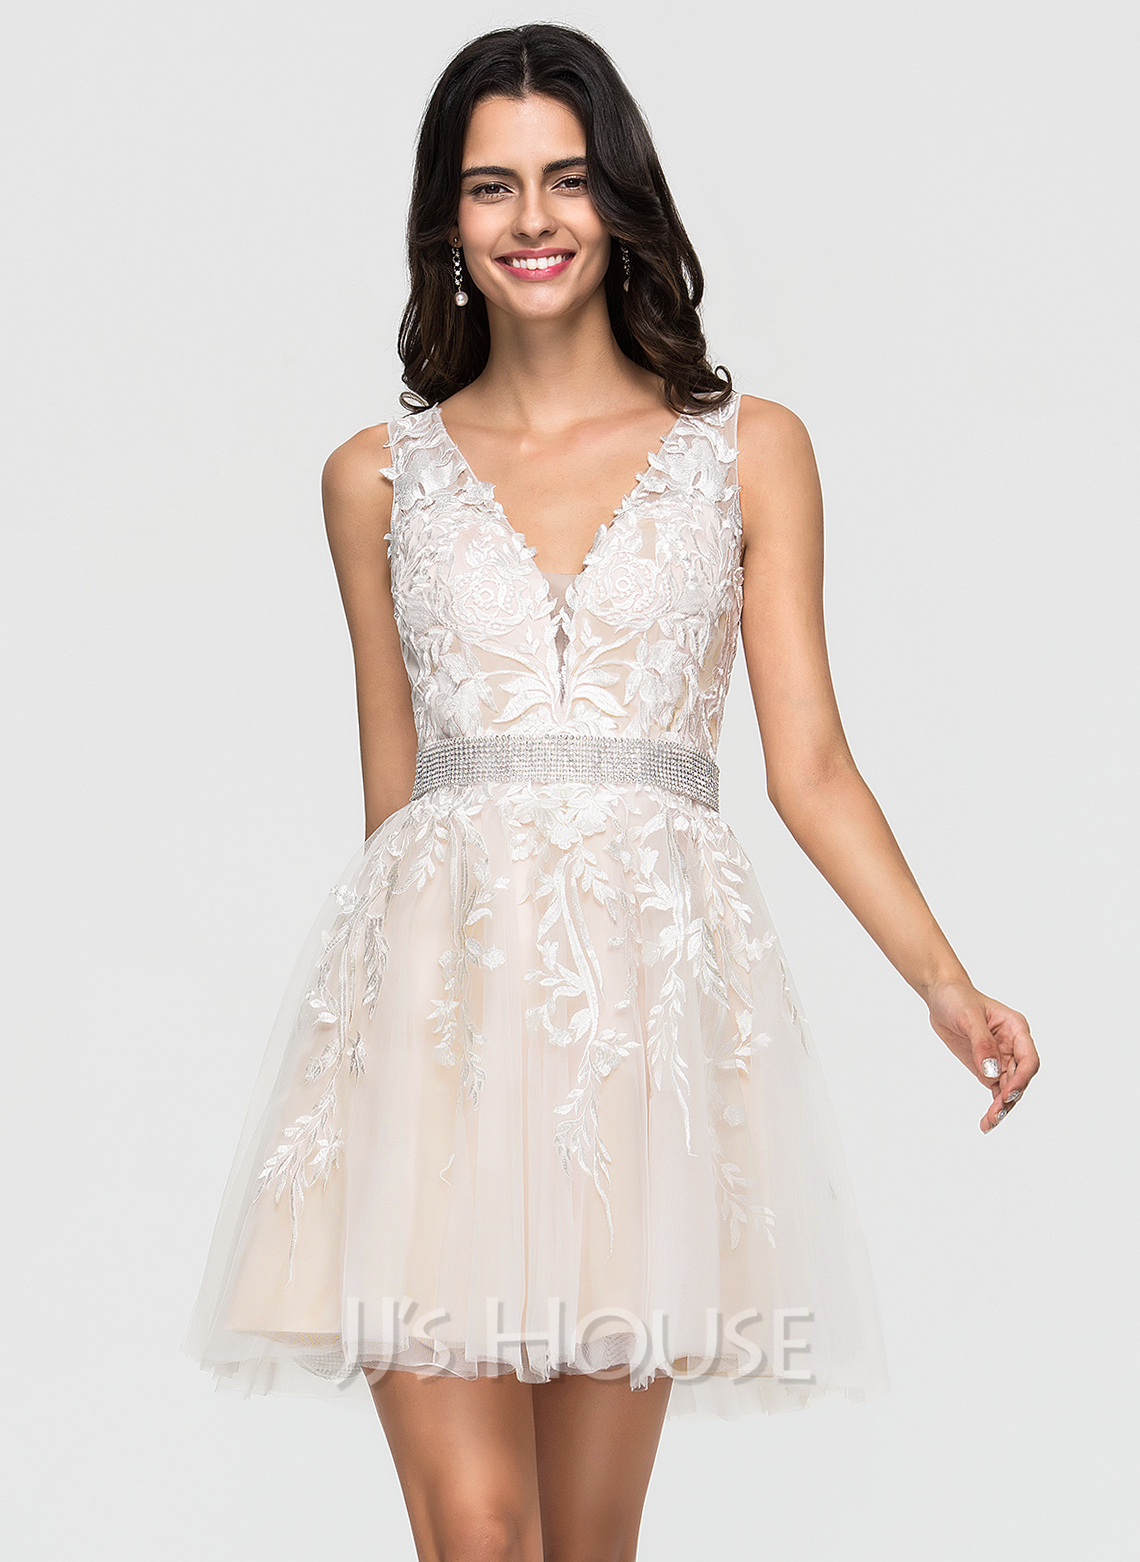 a6e5d8a4dd79 A-Line/Princess V-neck Short/Mini Tulle Homecoming Dress With Lace. Loading  zoom